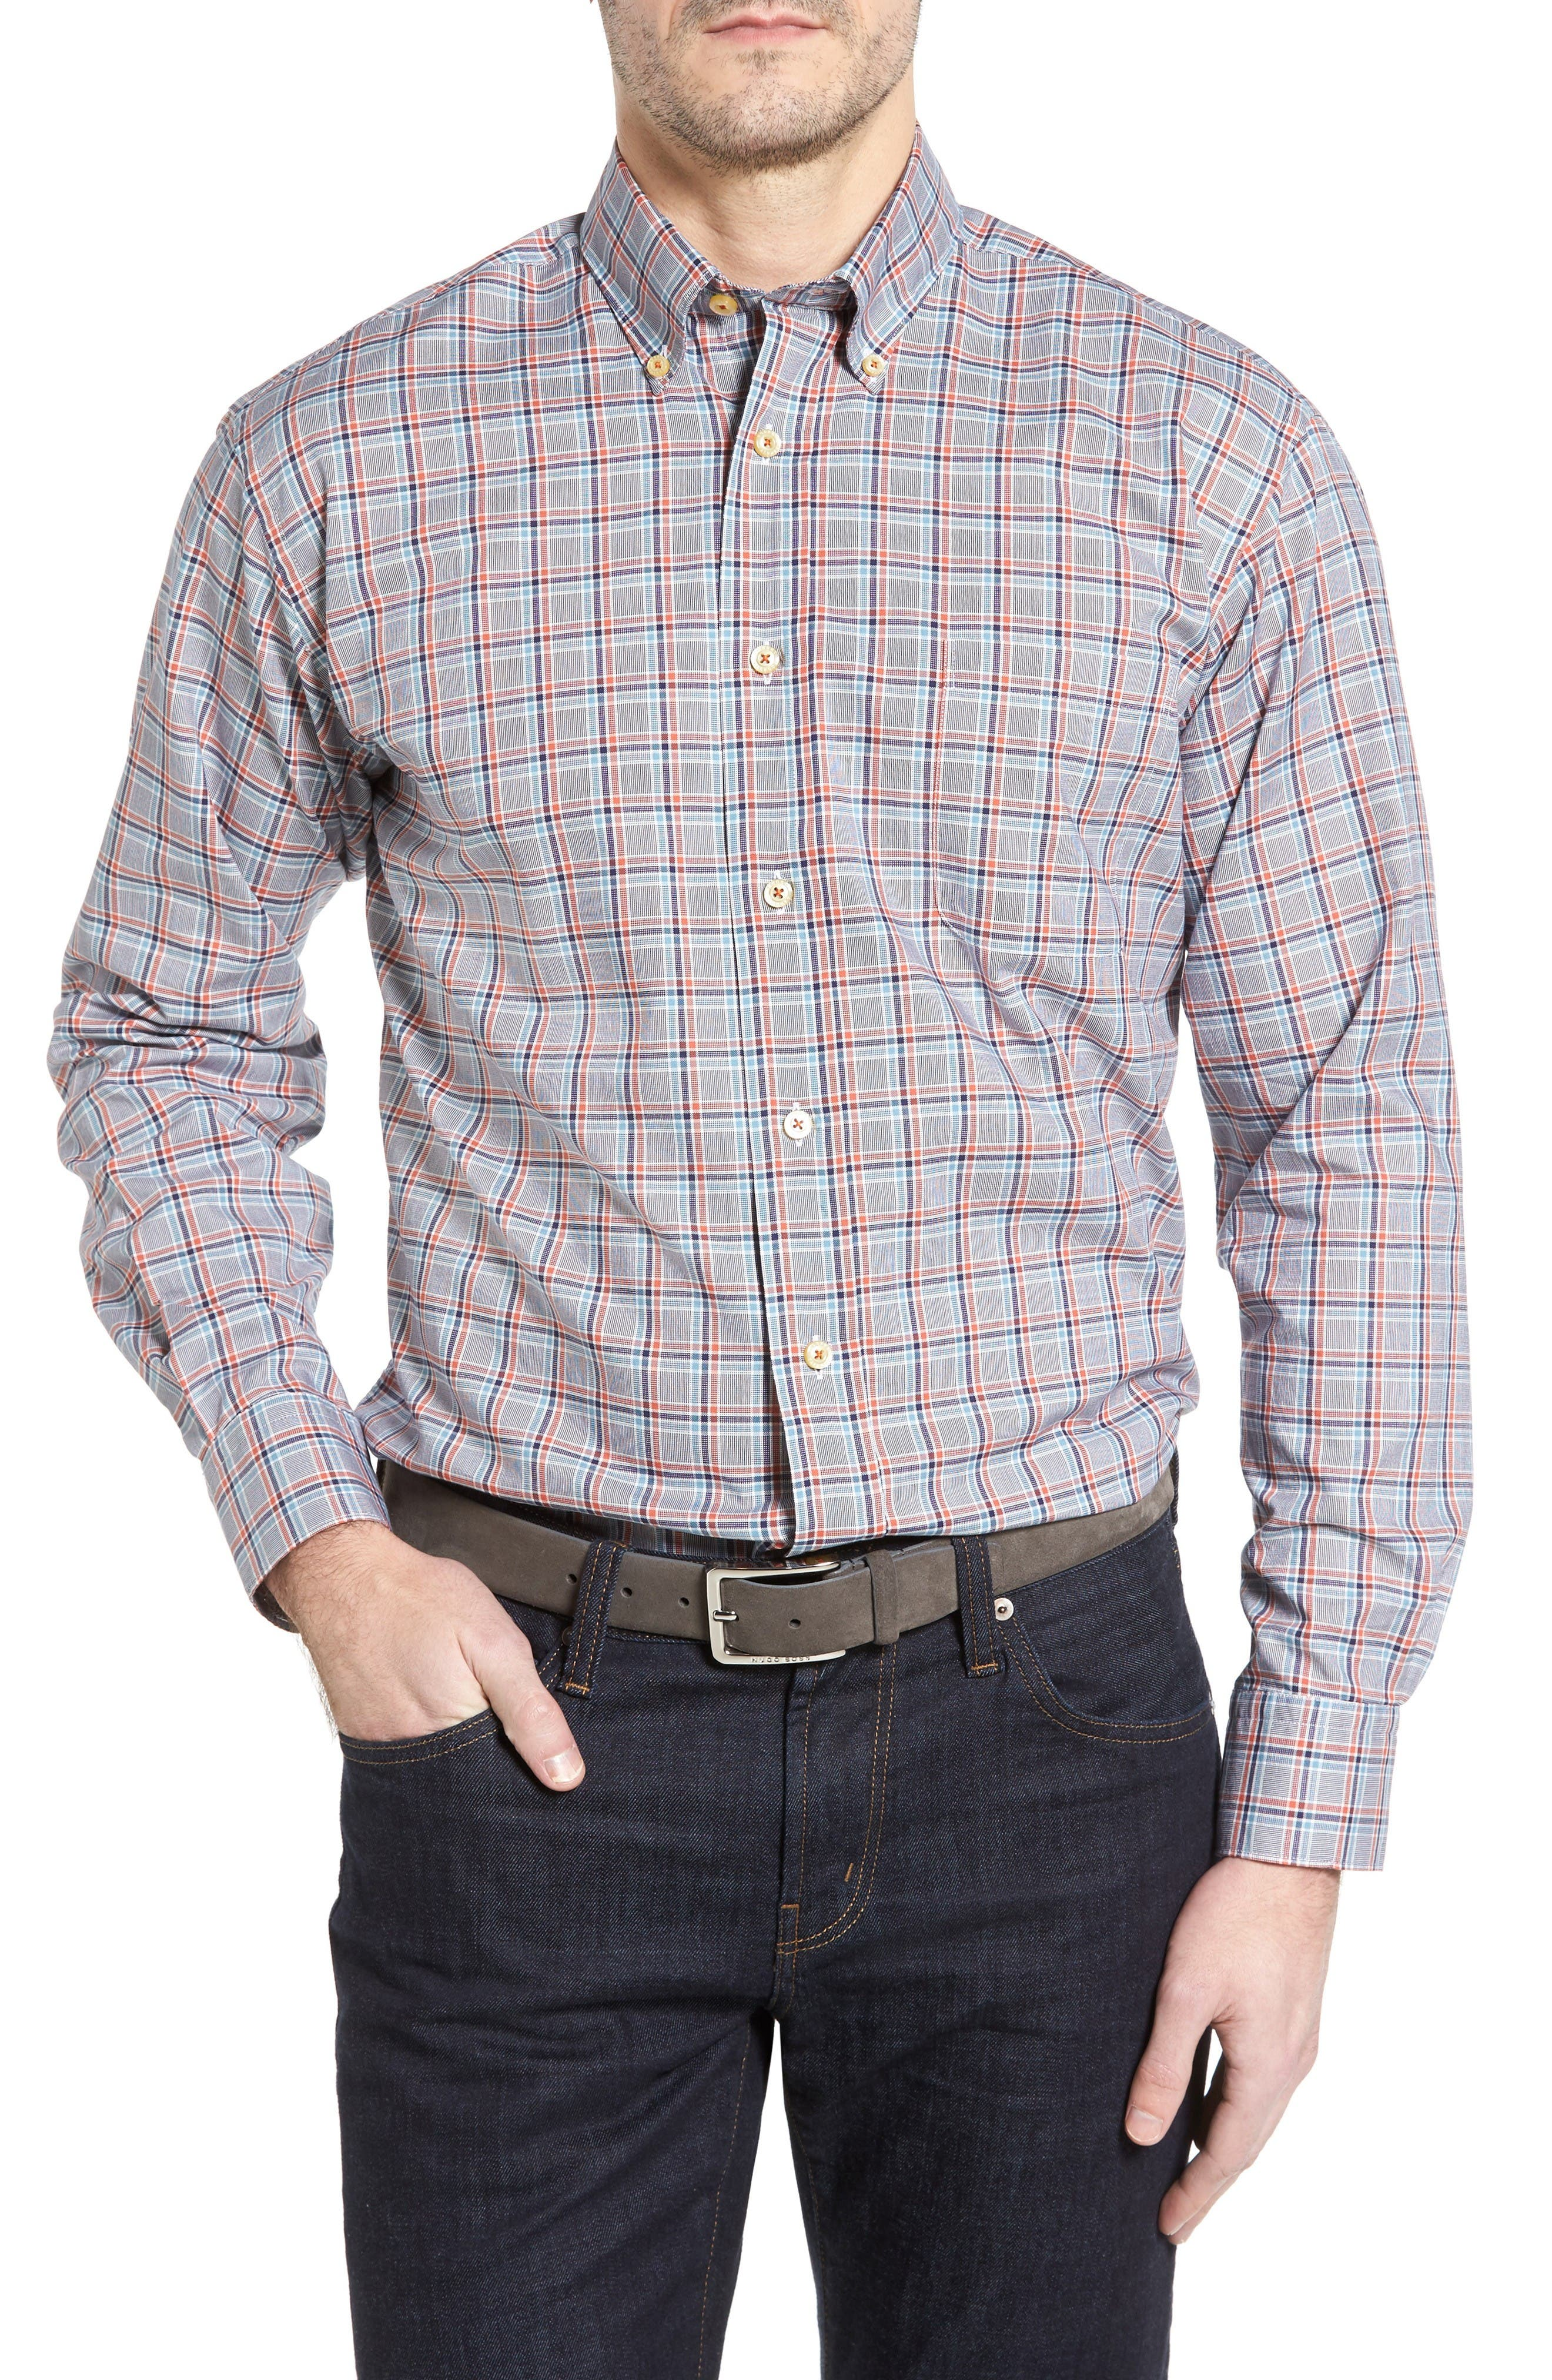 Main Image - Robert Talbott Anderson Classic Fit Plaid Oxford Sport Shirt